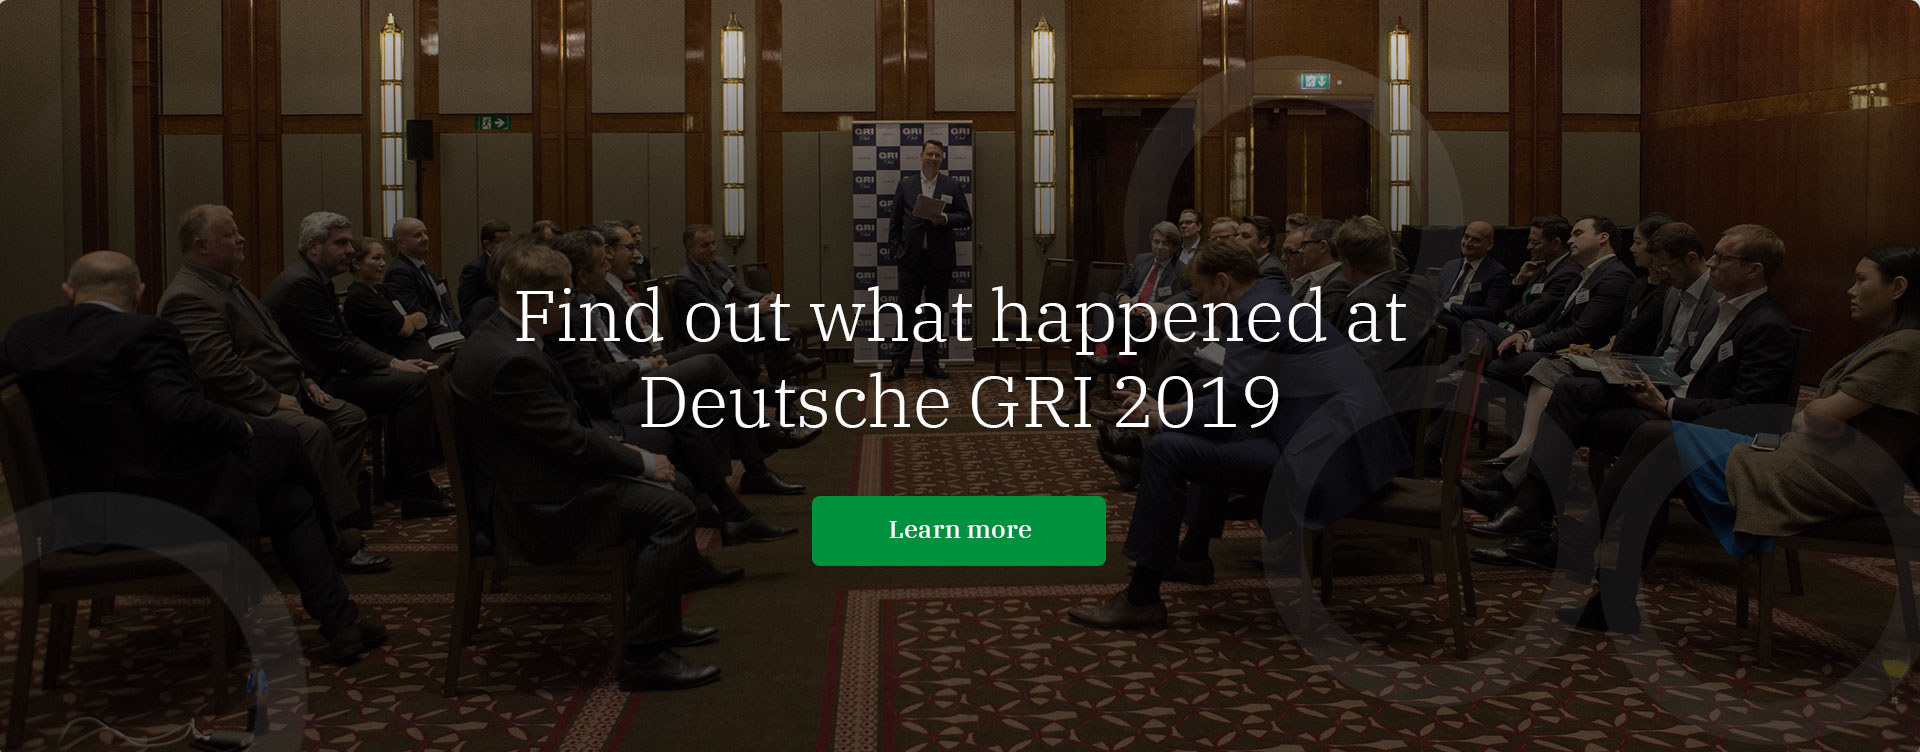 Deutsche GRI 2019: RE Leaders Find Reasons to be Optimistic in Late Cycle